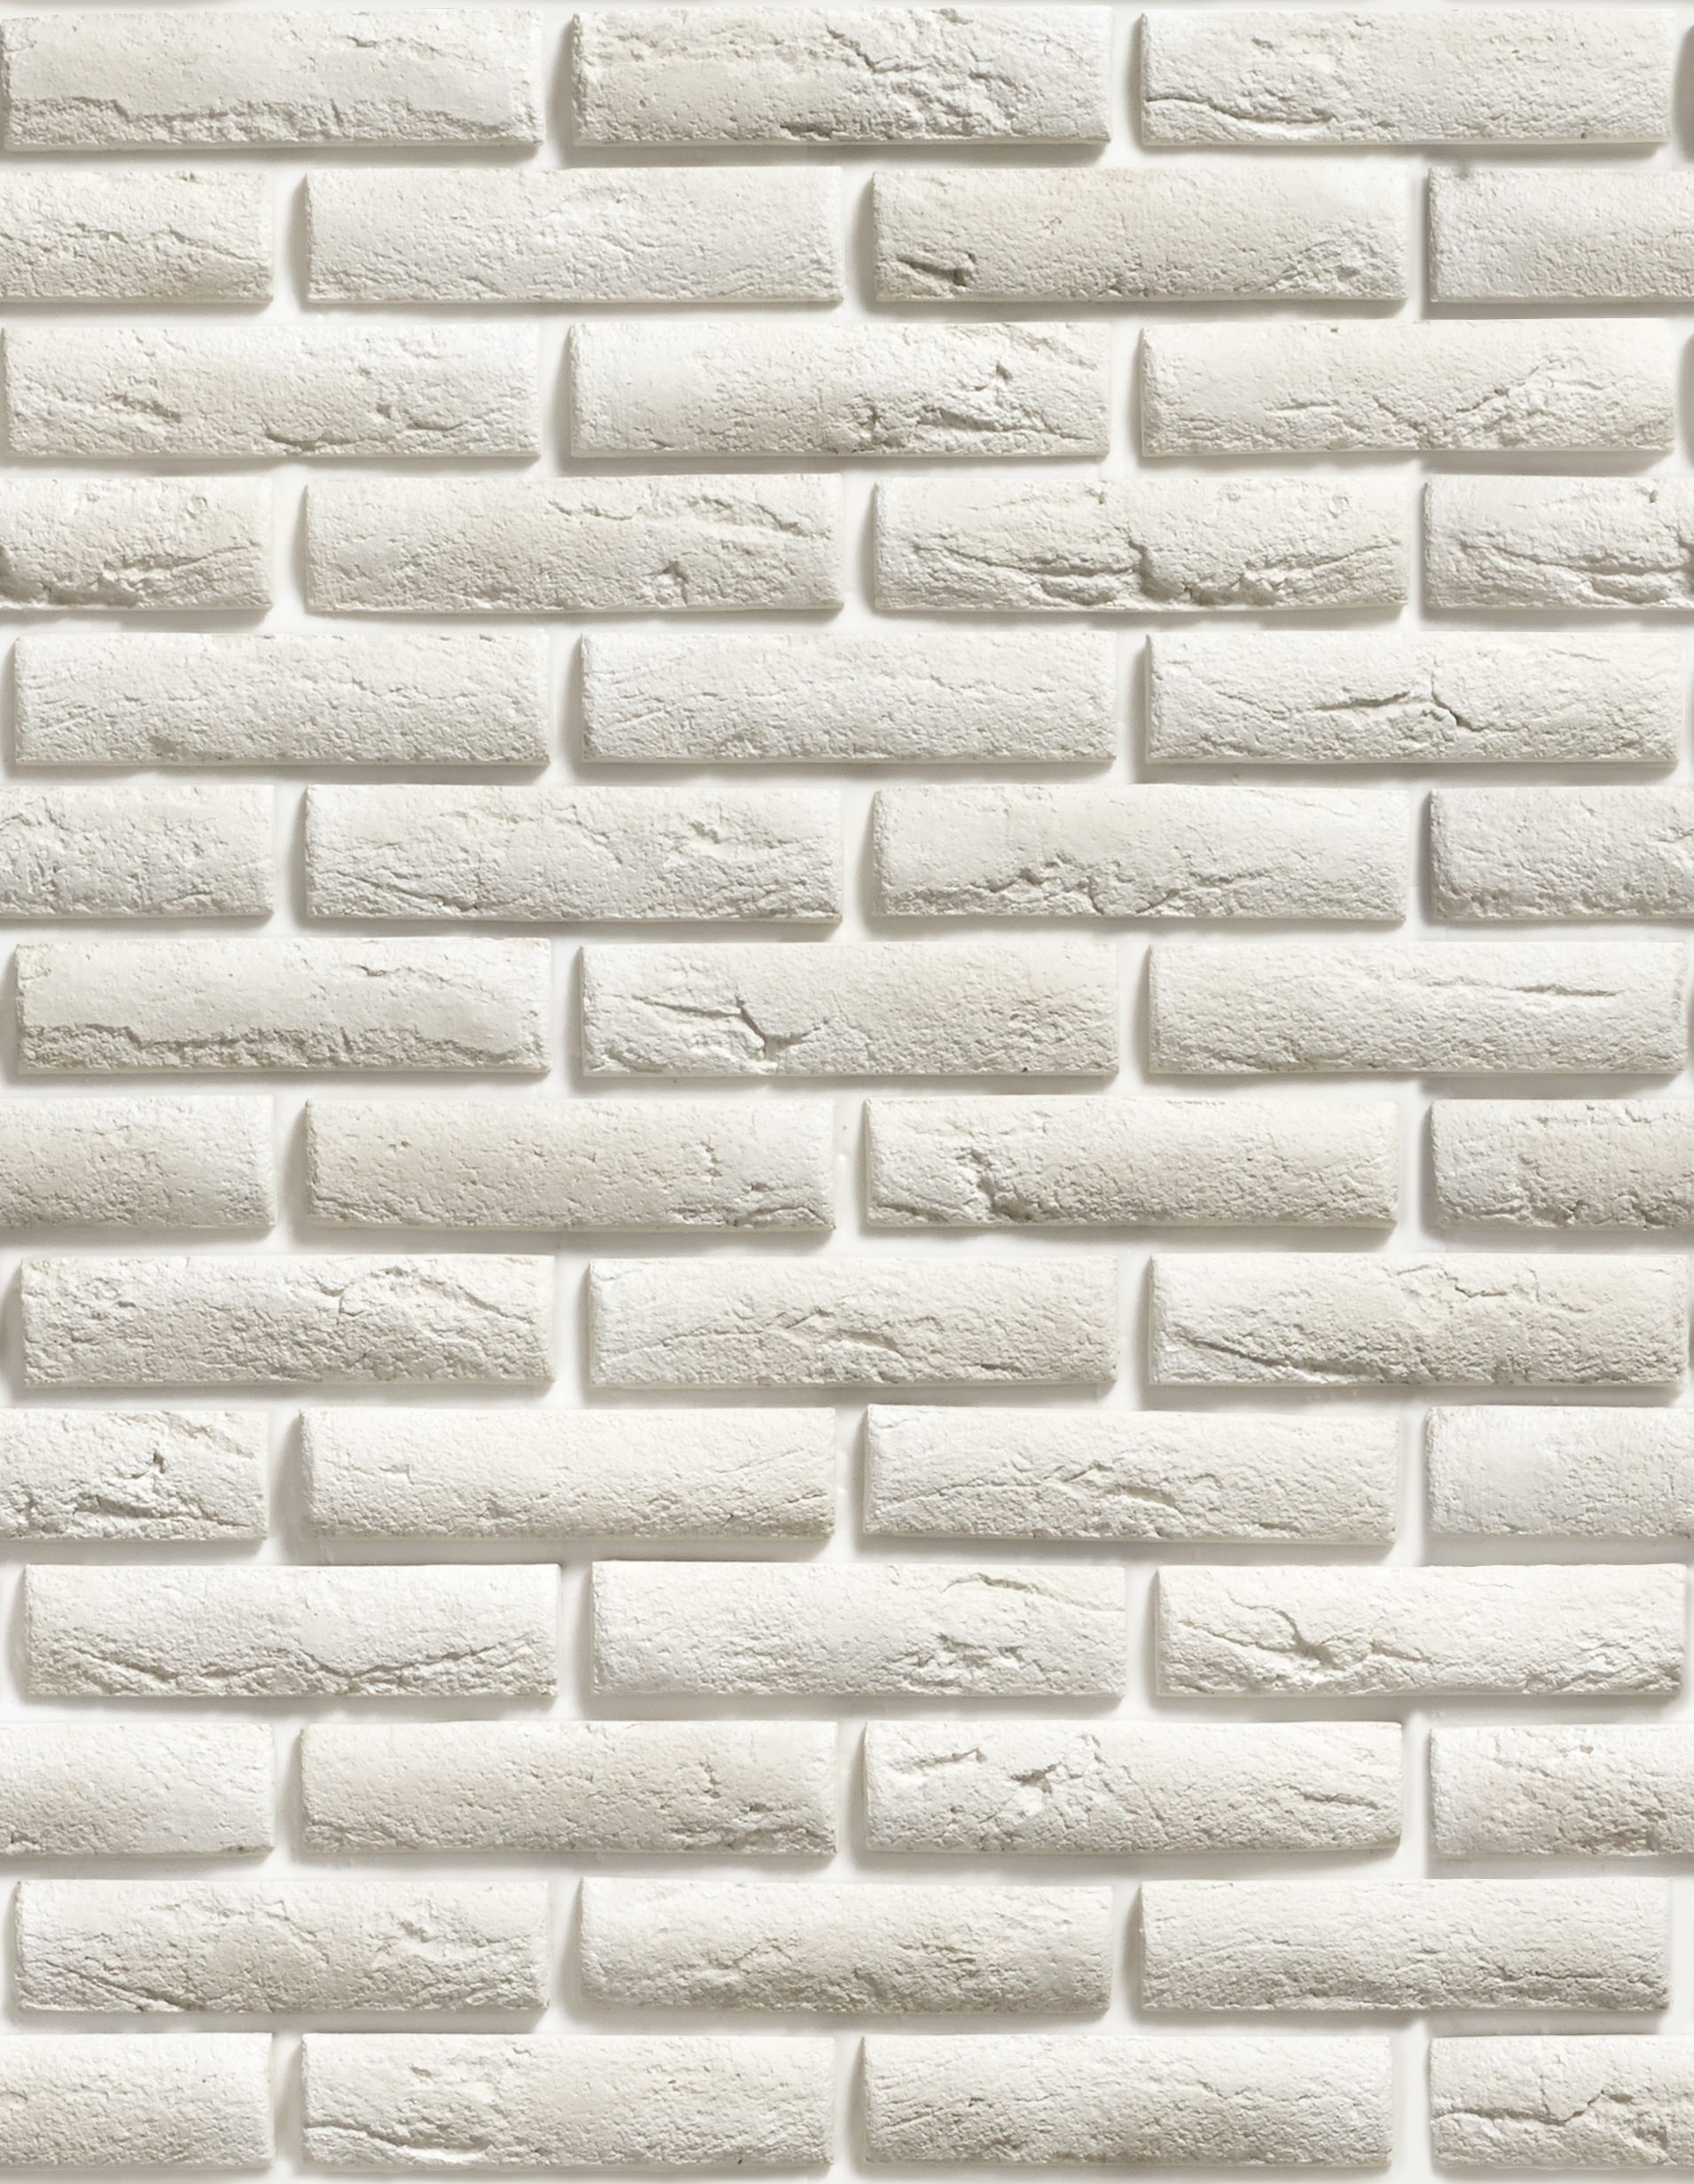 brick texture, decorative brick, bricks, texture, download photo, white bricks